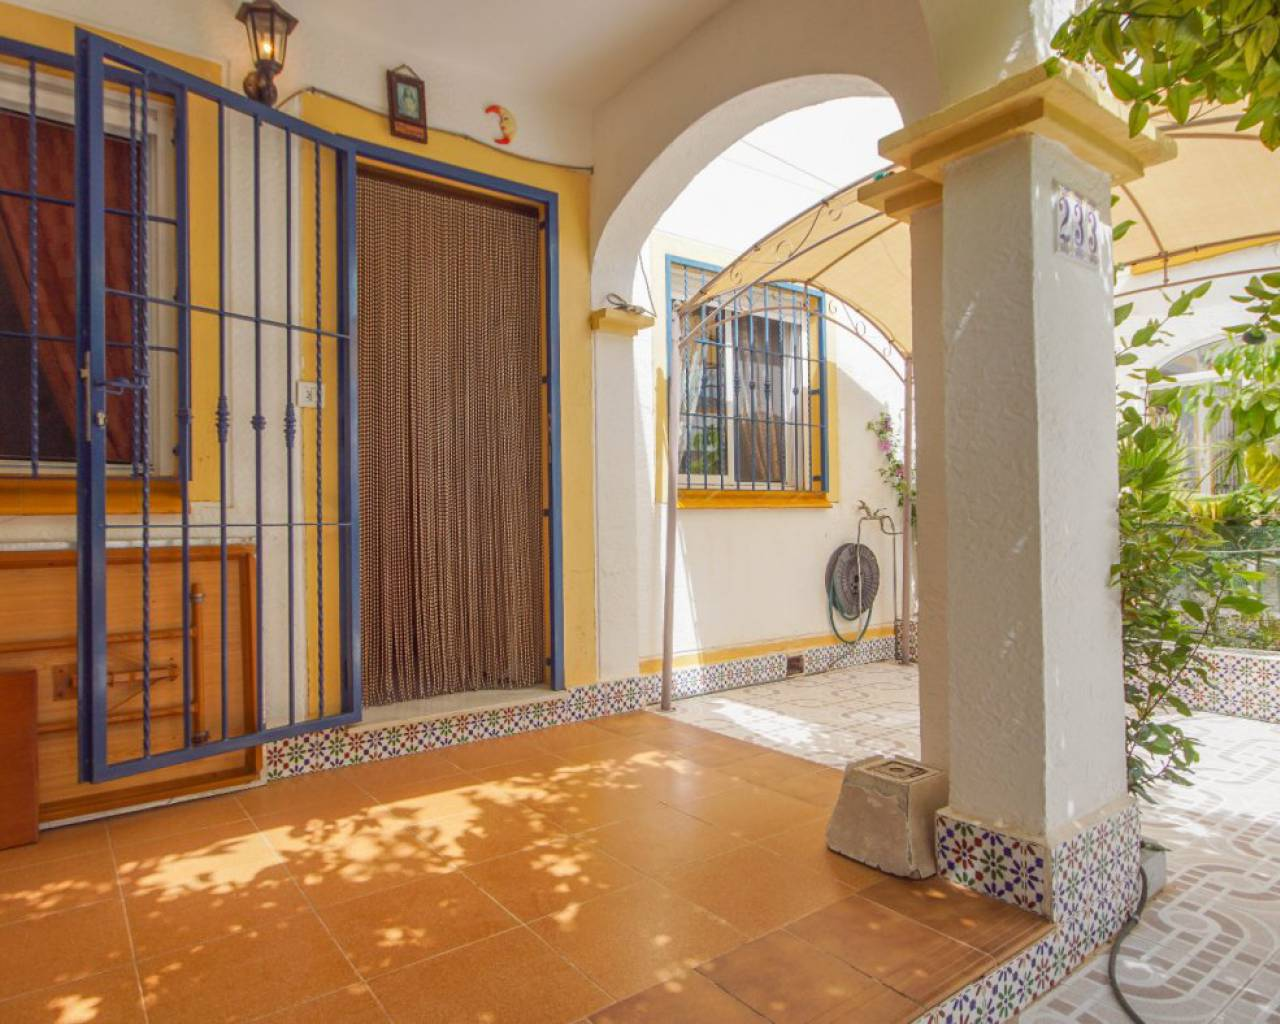 Sale - Ground floor - Orihuela Costa - La Florida